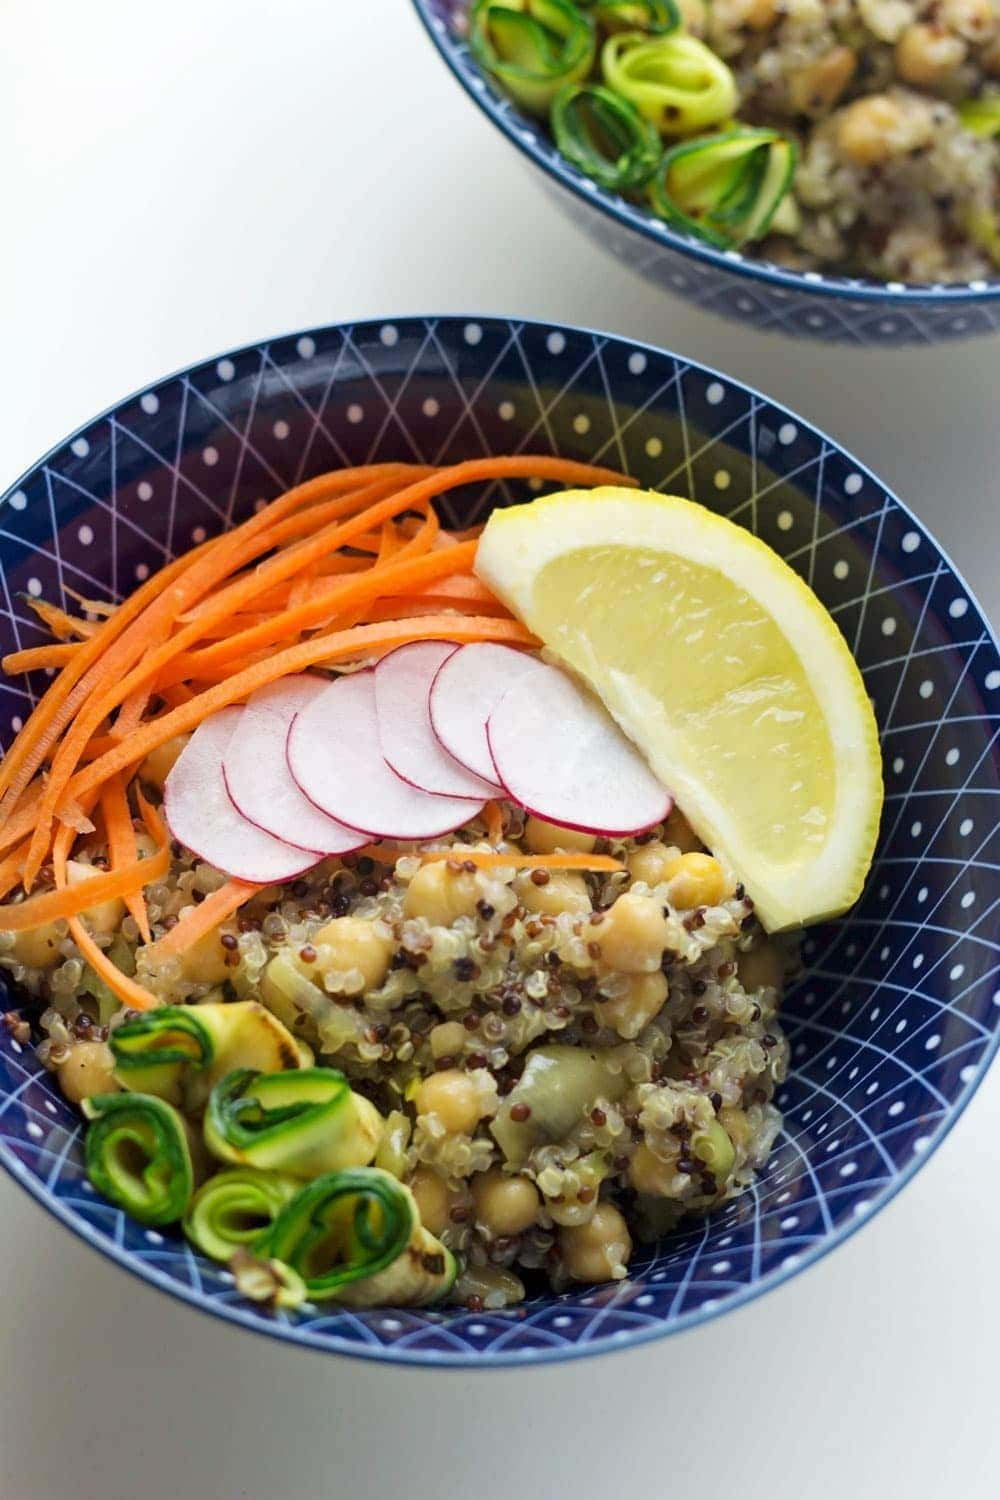 These protein-packed veggie quinoa bowls will keep you full for hours. Look no further for a super healthy vegetarian dinner!